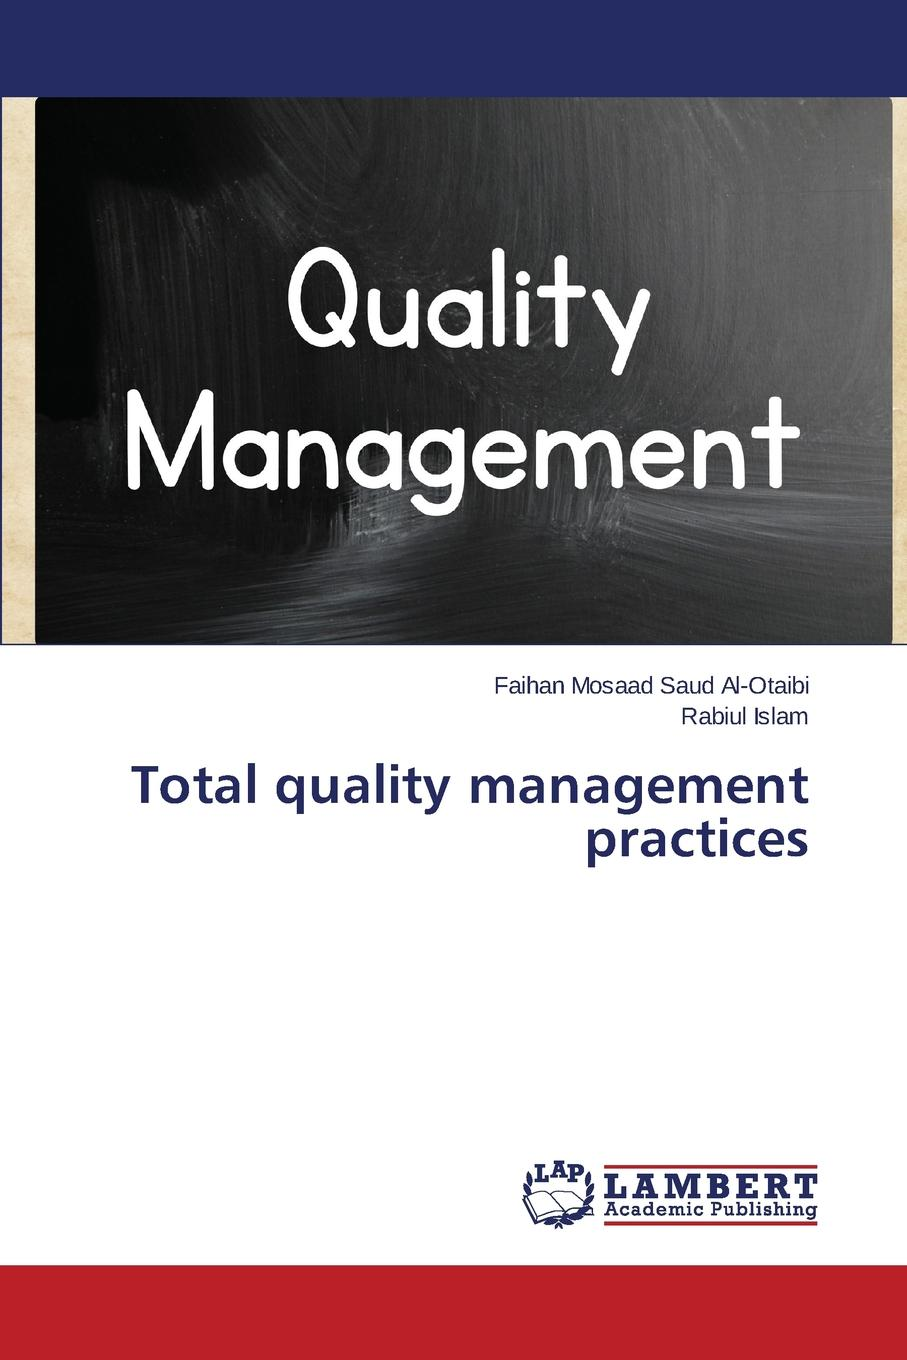 Al-Otaibi Faihan Mosaad Saud, Islam Rabiul Total quality management practices abadal salam t hussain measurement techniques of total quality management tqm